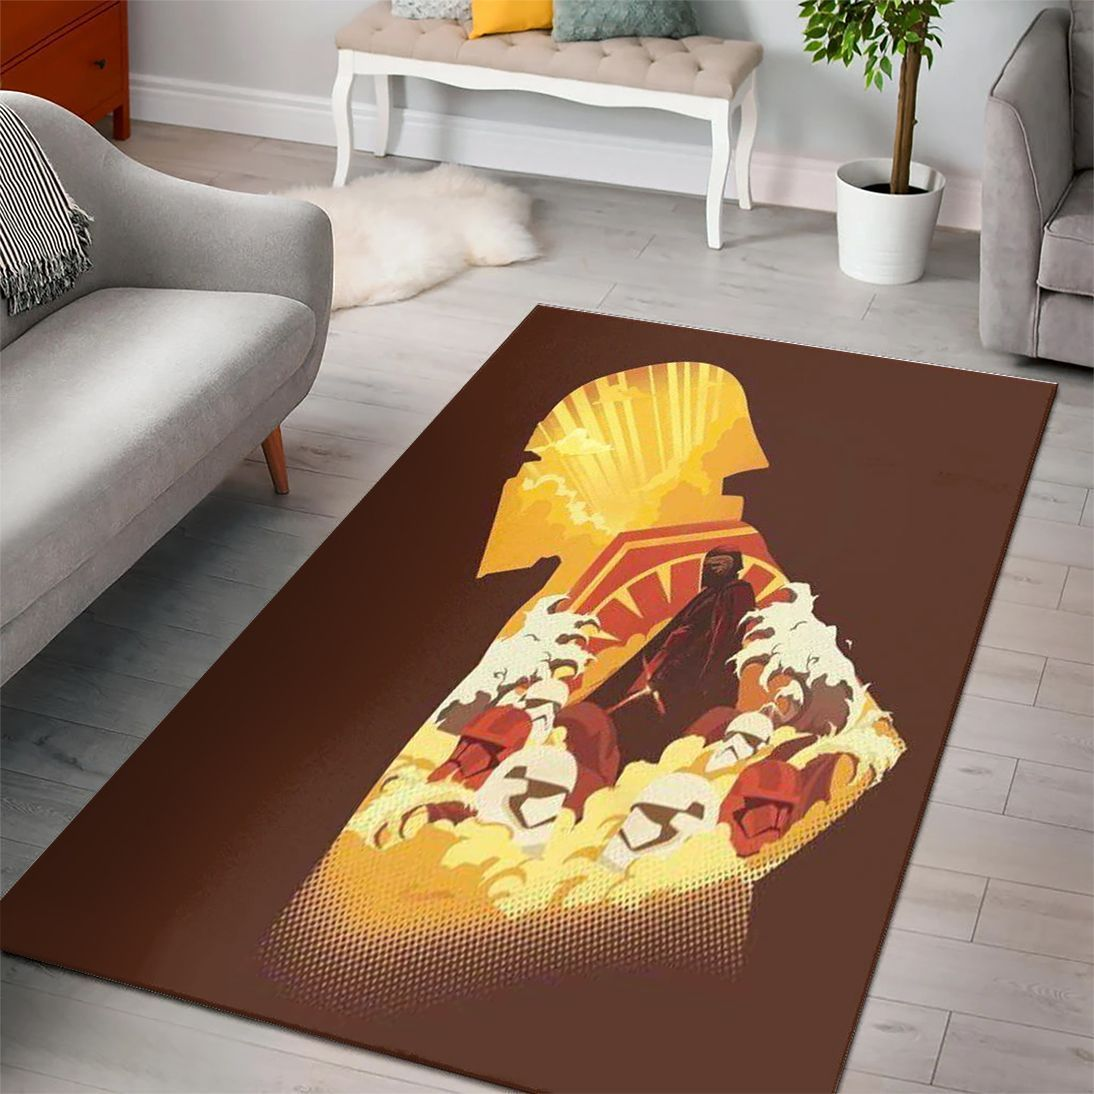 The Last Jedi Star Wars Rug